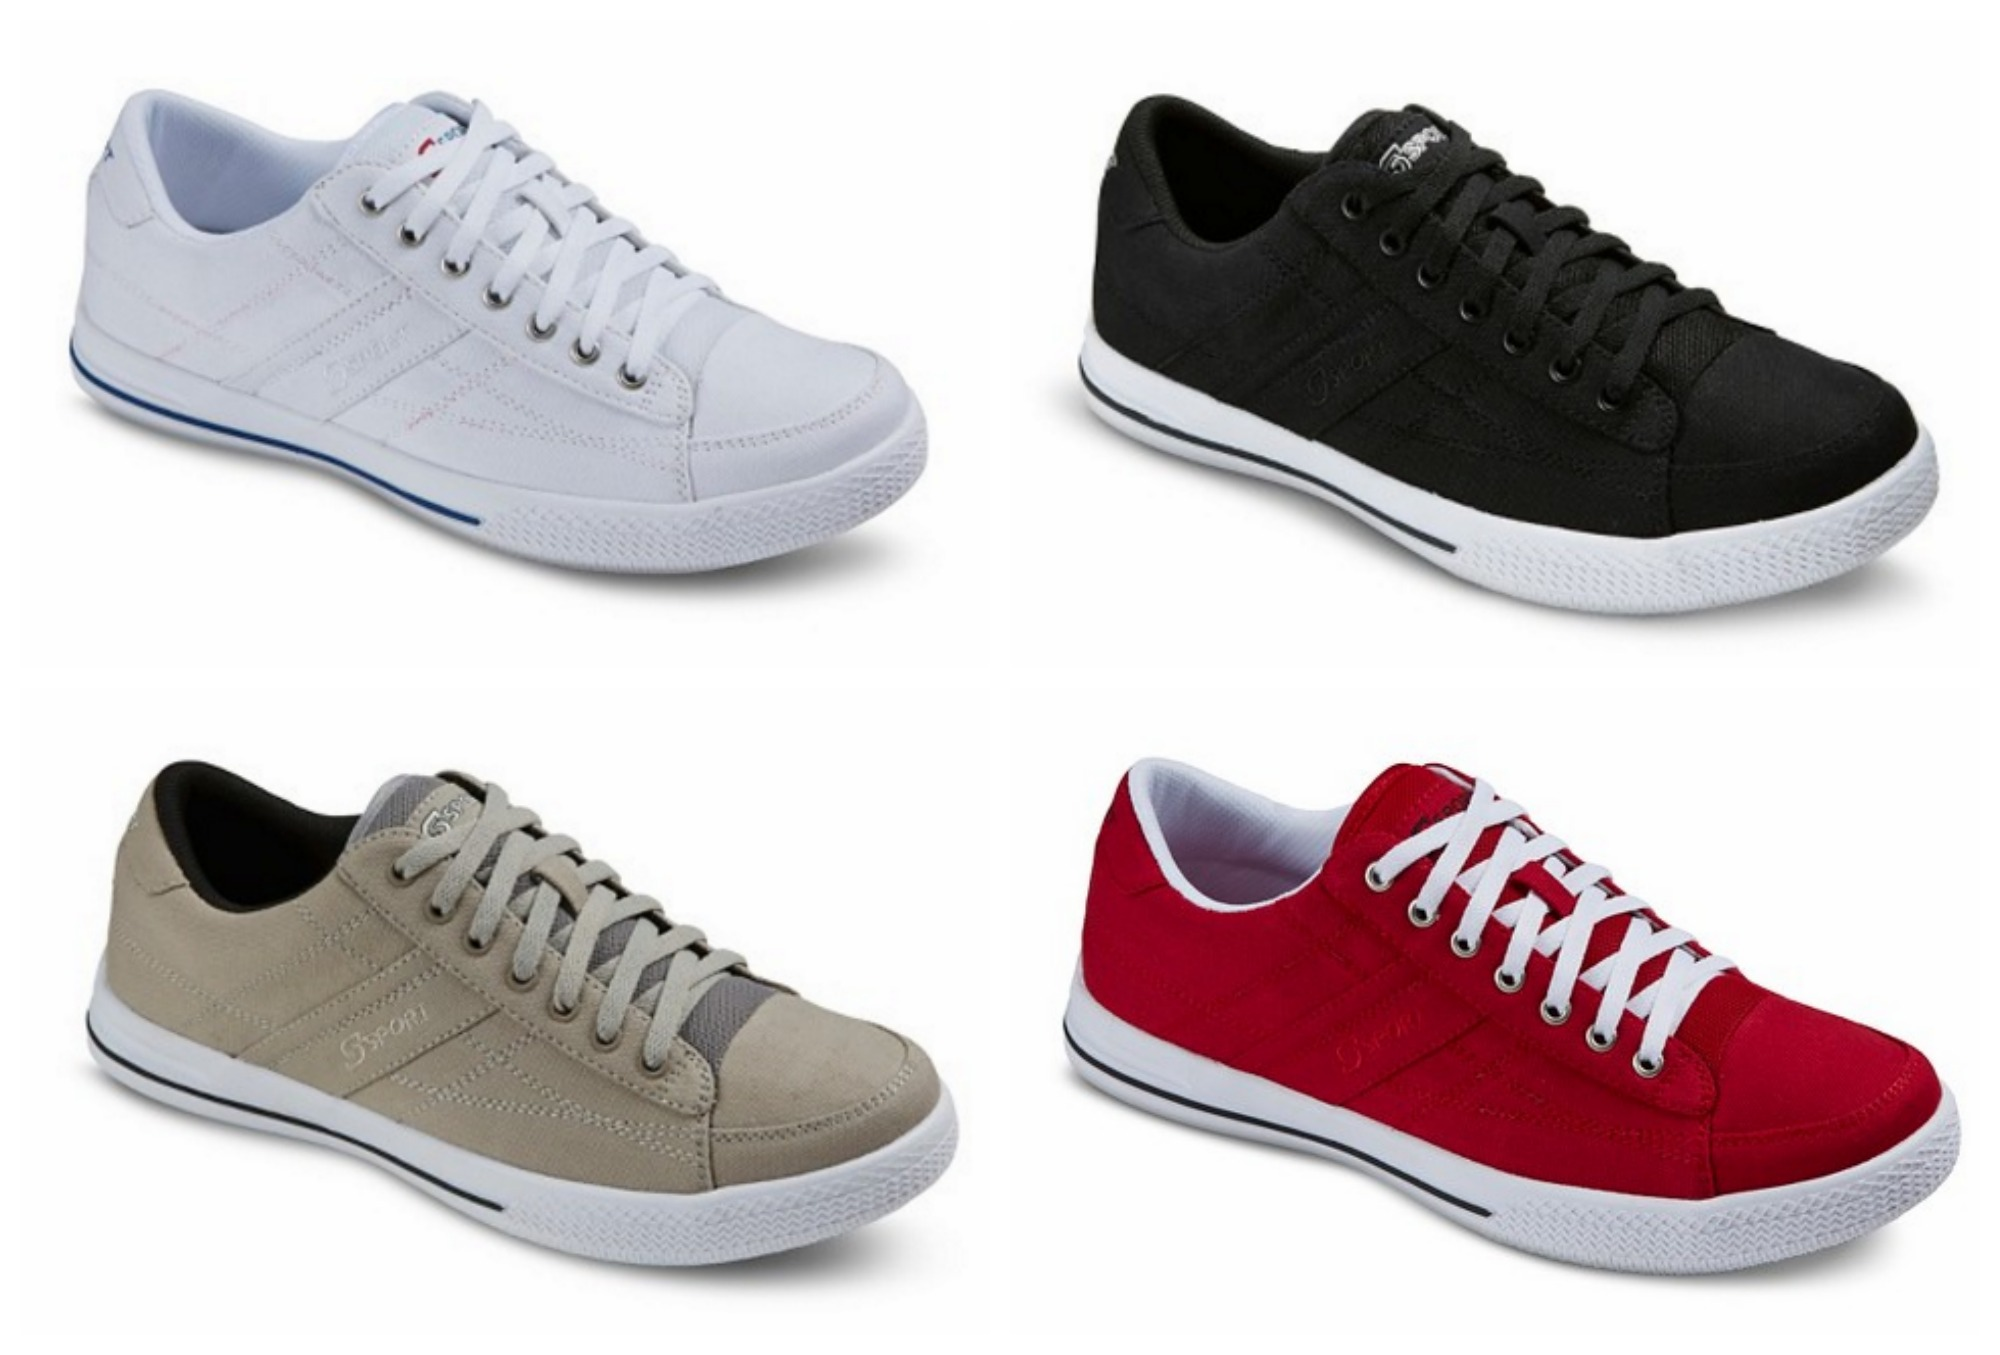 5fbb88d53865 Men s Canvas Skechers Shoes Just  13.98 Shipped  65% Off  - MyLitter ...